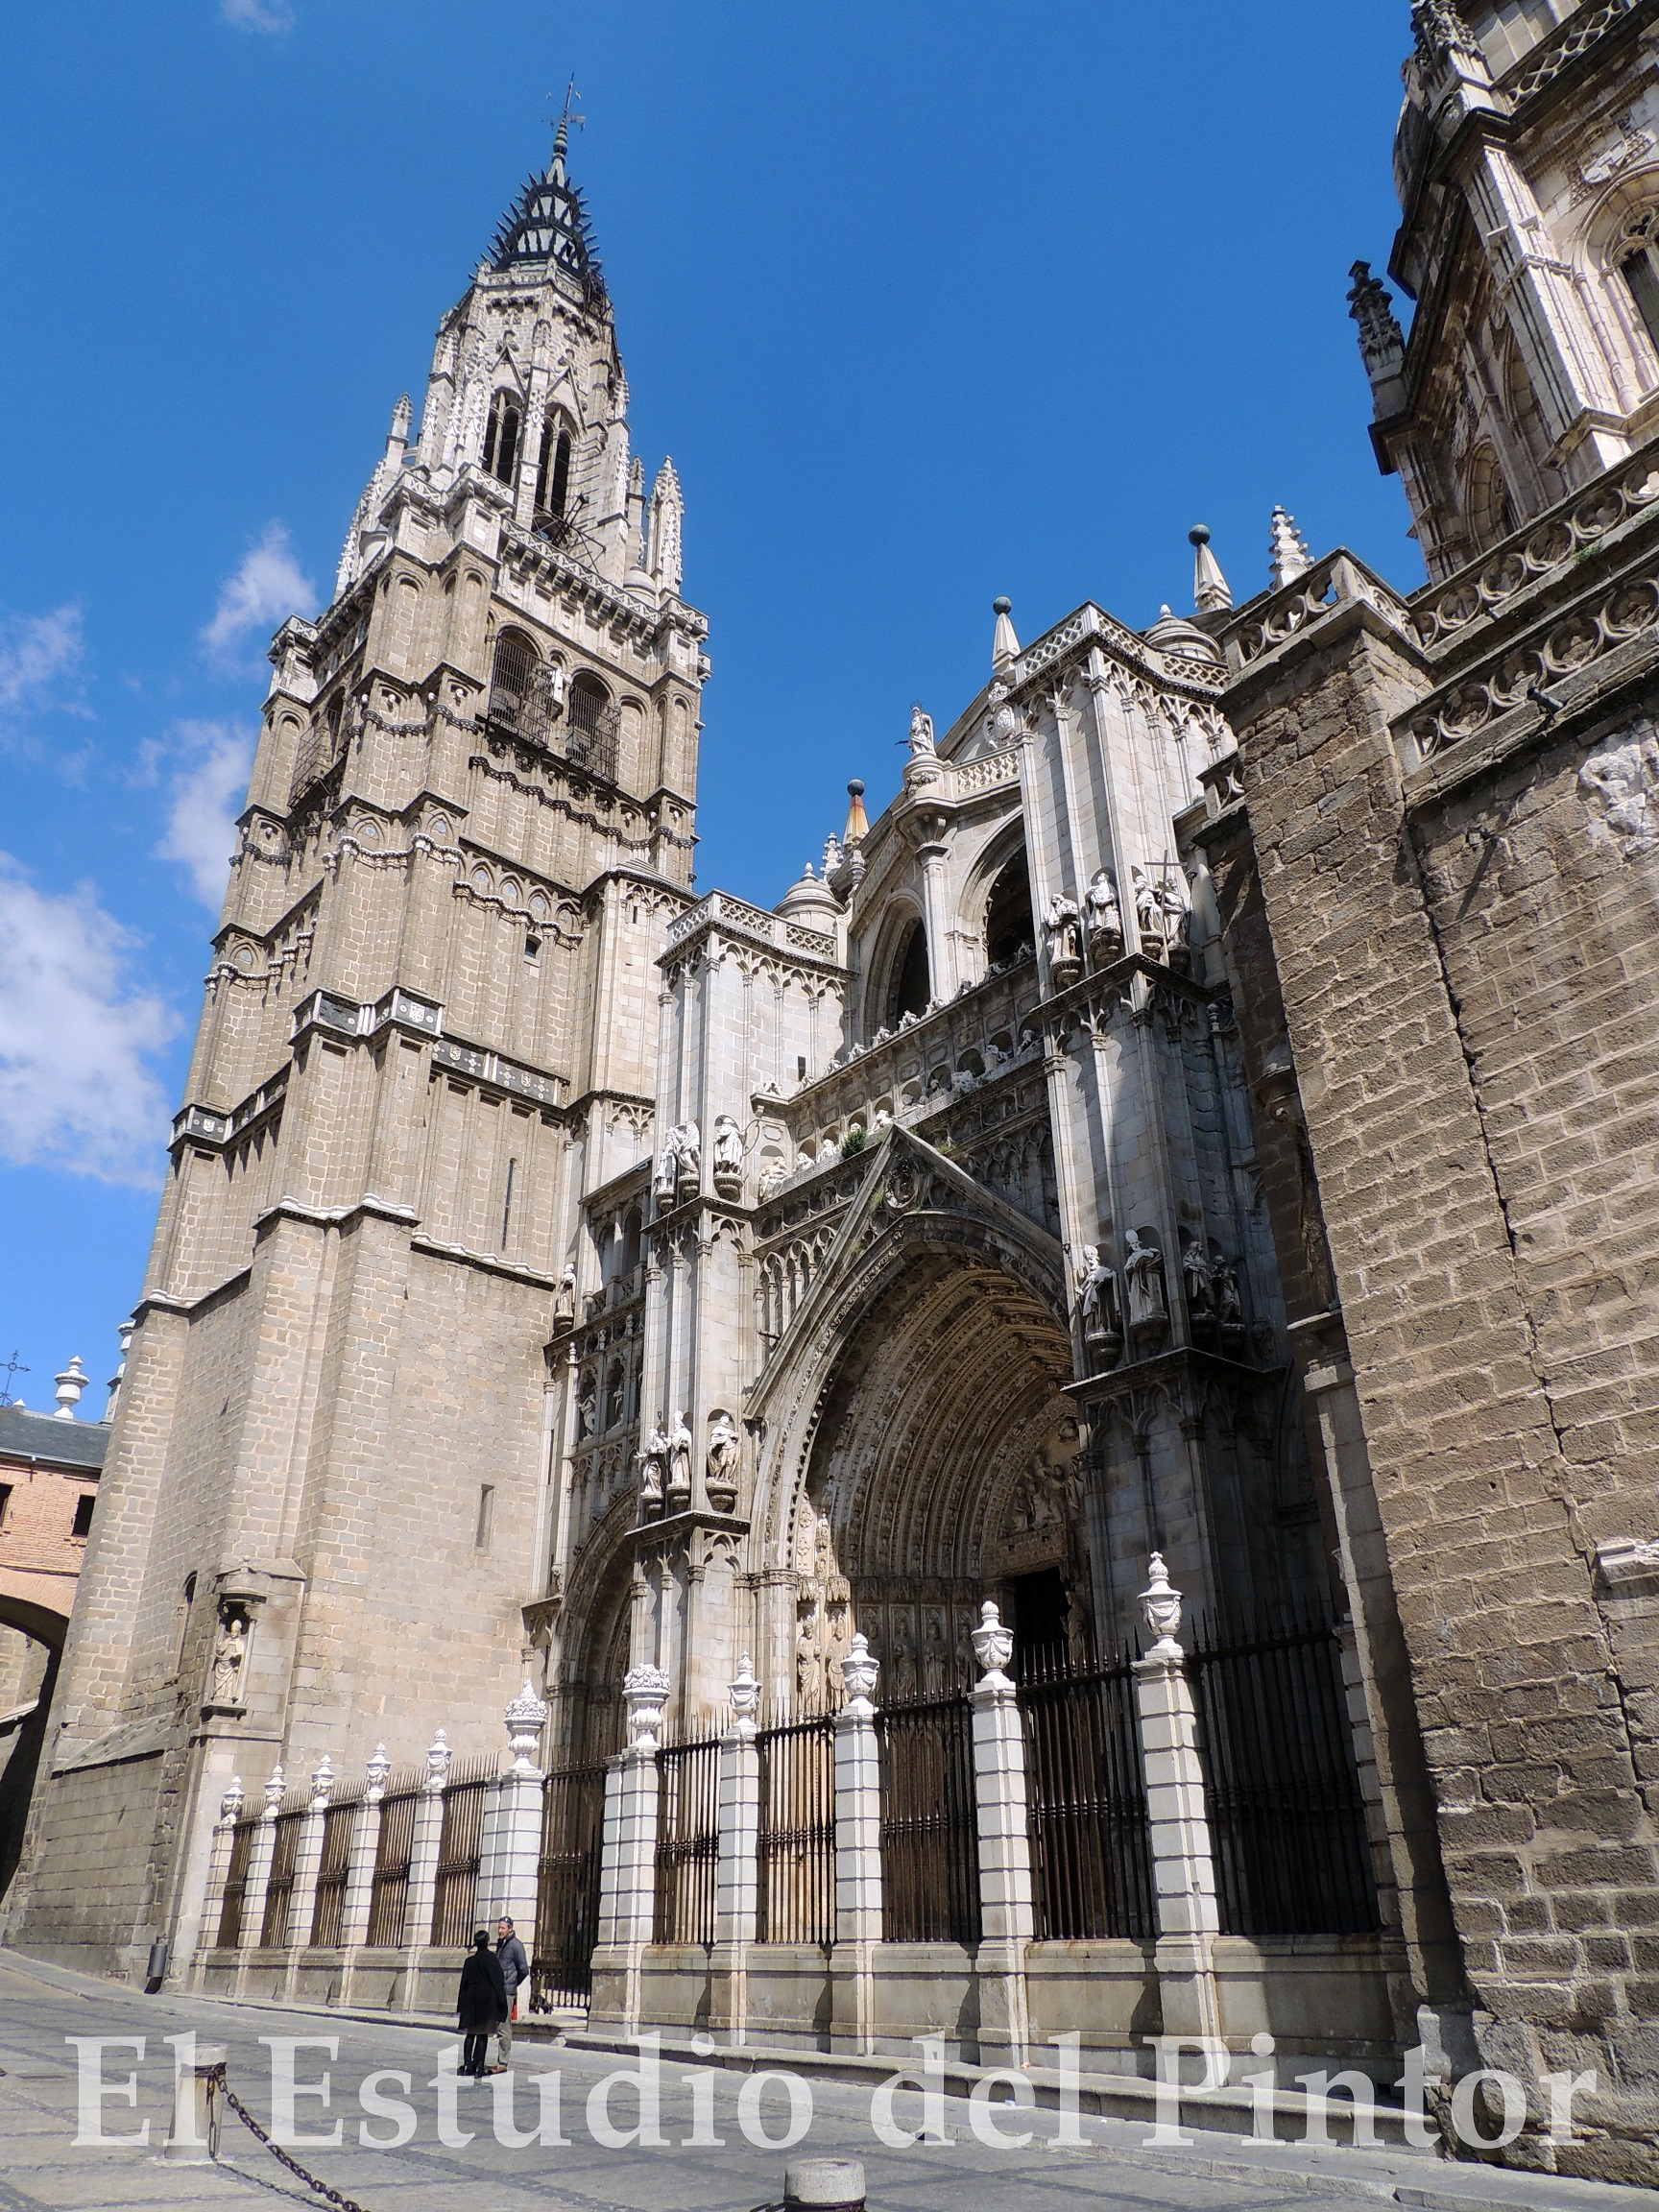 6. Catedral